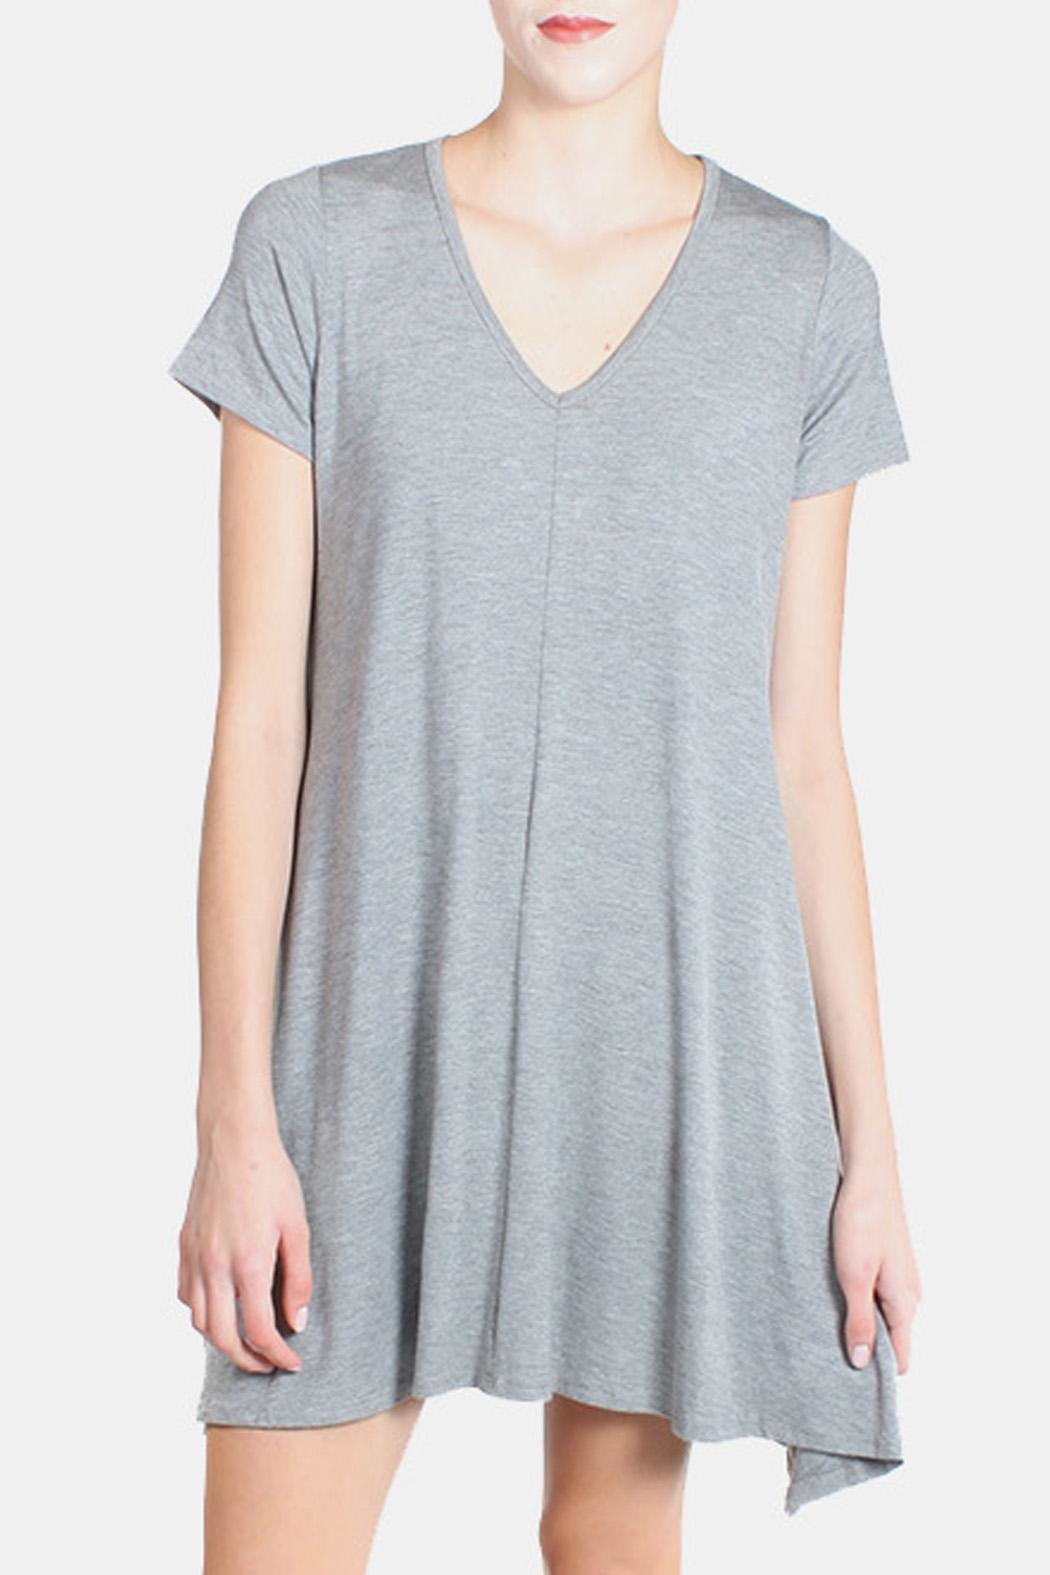 Chris & Carol Grey Essential Jersey Dress - Front Full Image